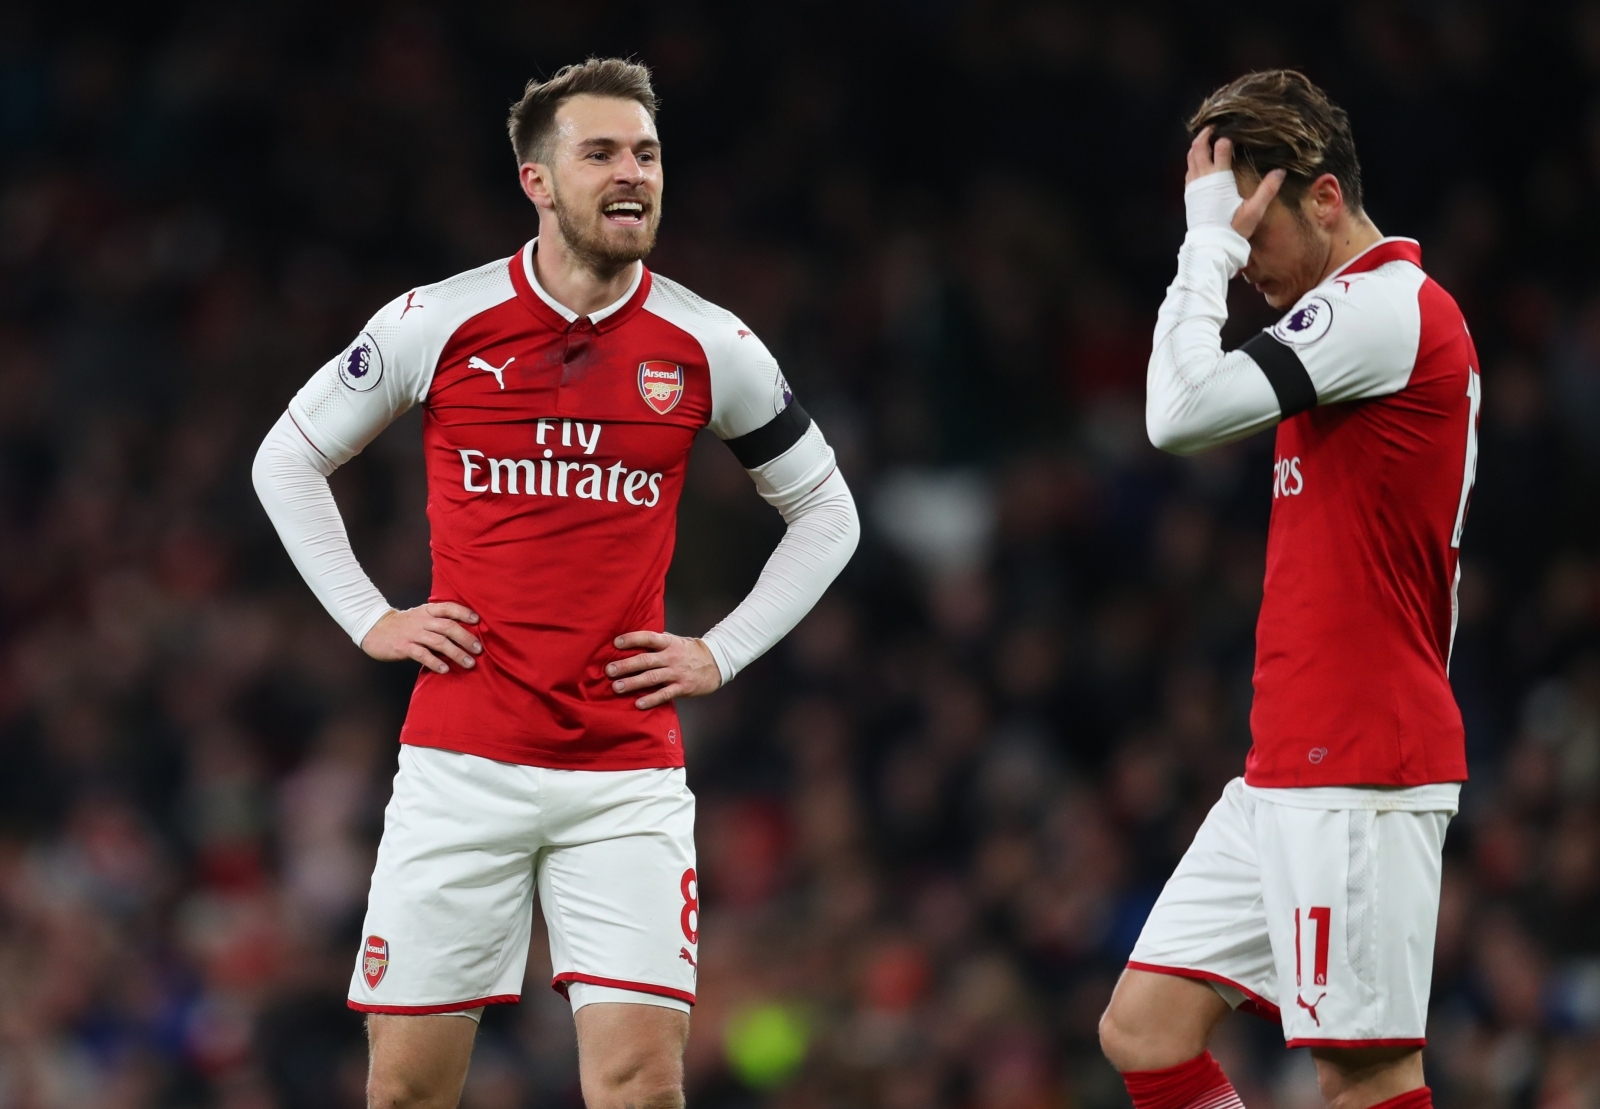 Wenger confirms star duo should be fit for Carabao Cup final